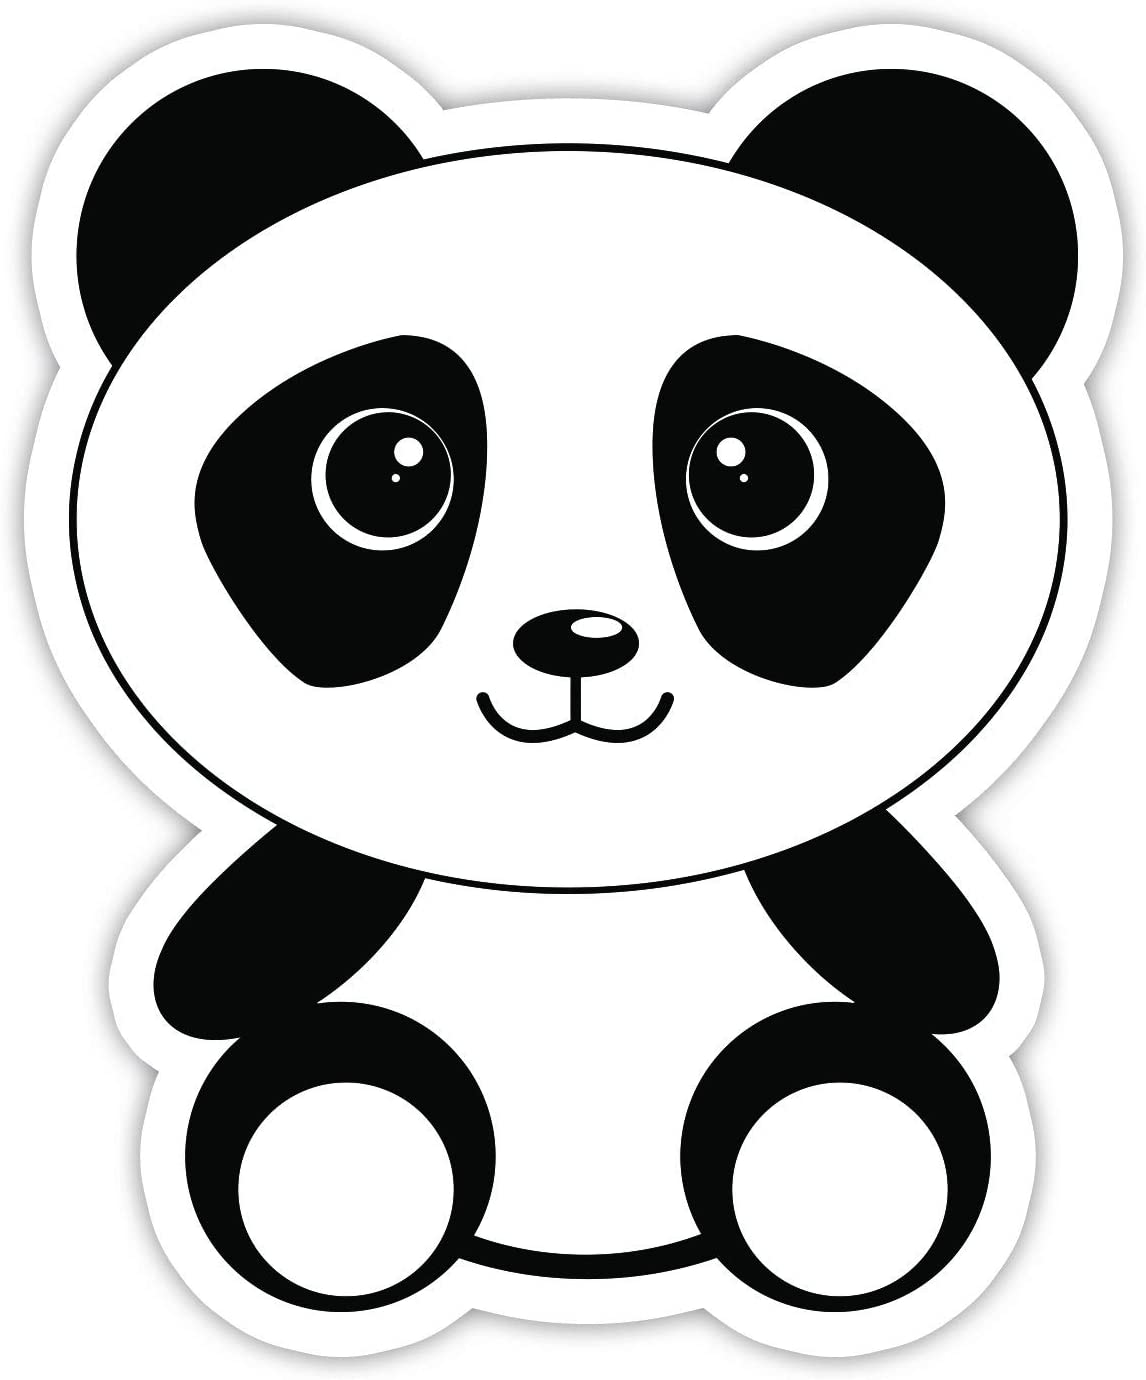 "Panda Bear Sticker - Laptop Stickers - 3"" Vinyl Decal - Laptop, Phone, Tablet Vinyl Decal Sticker"